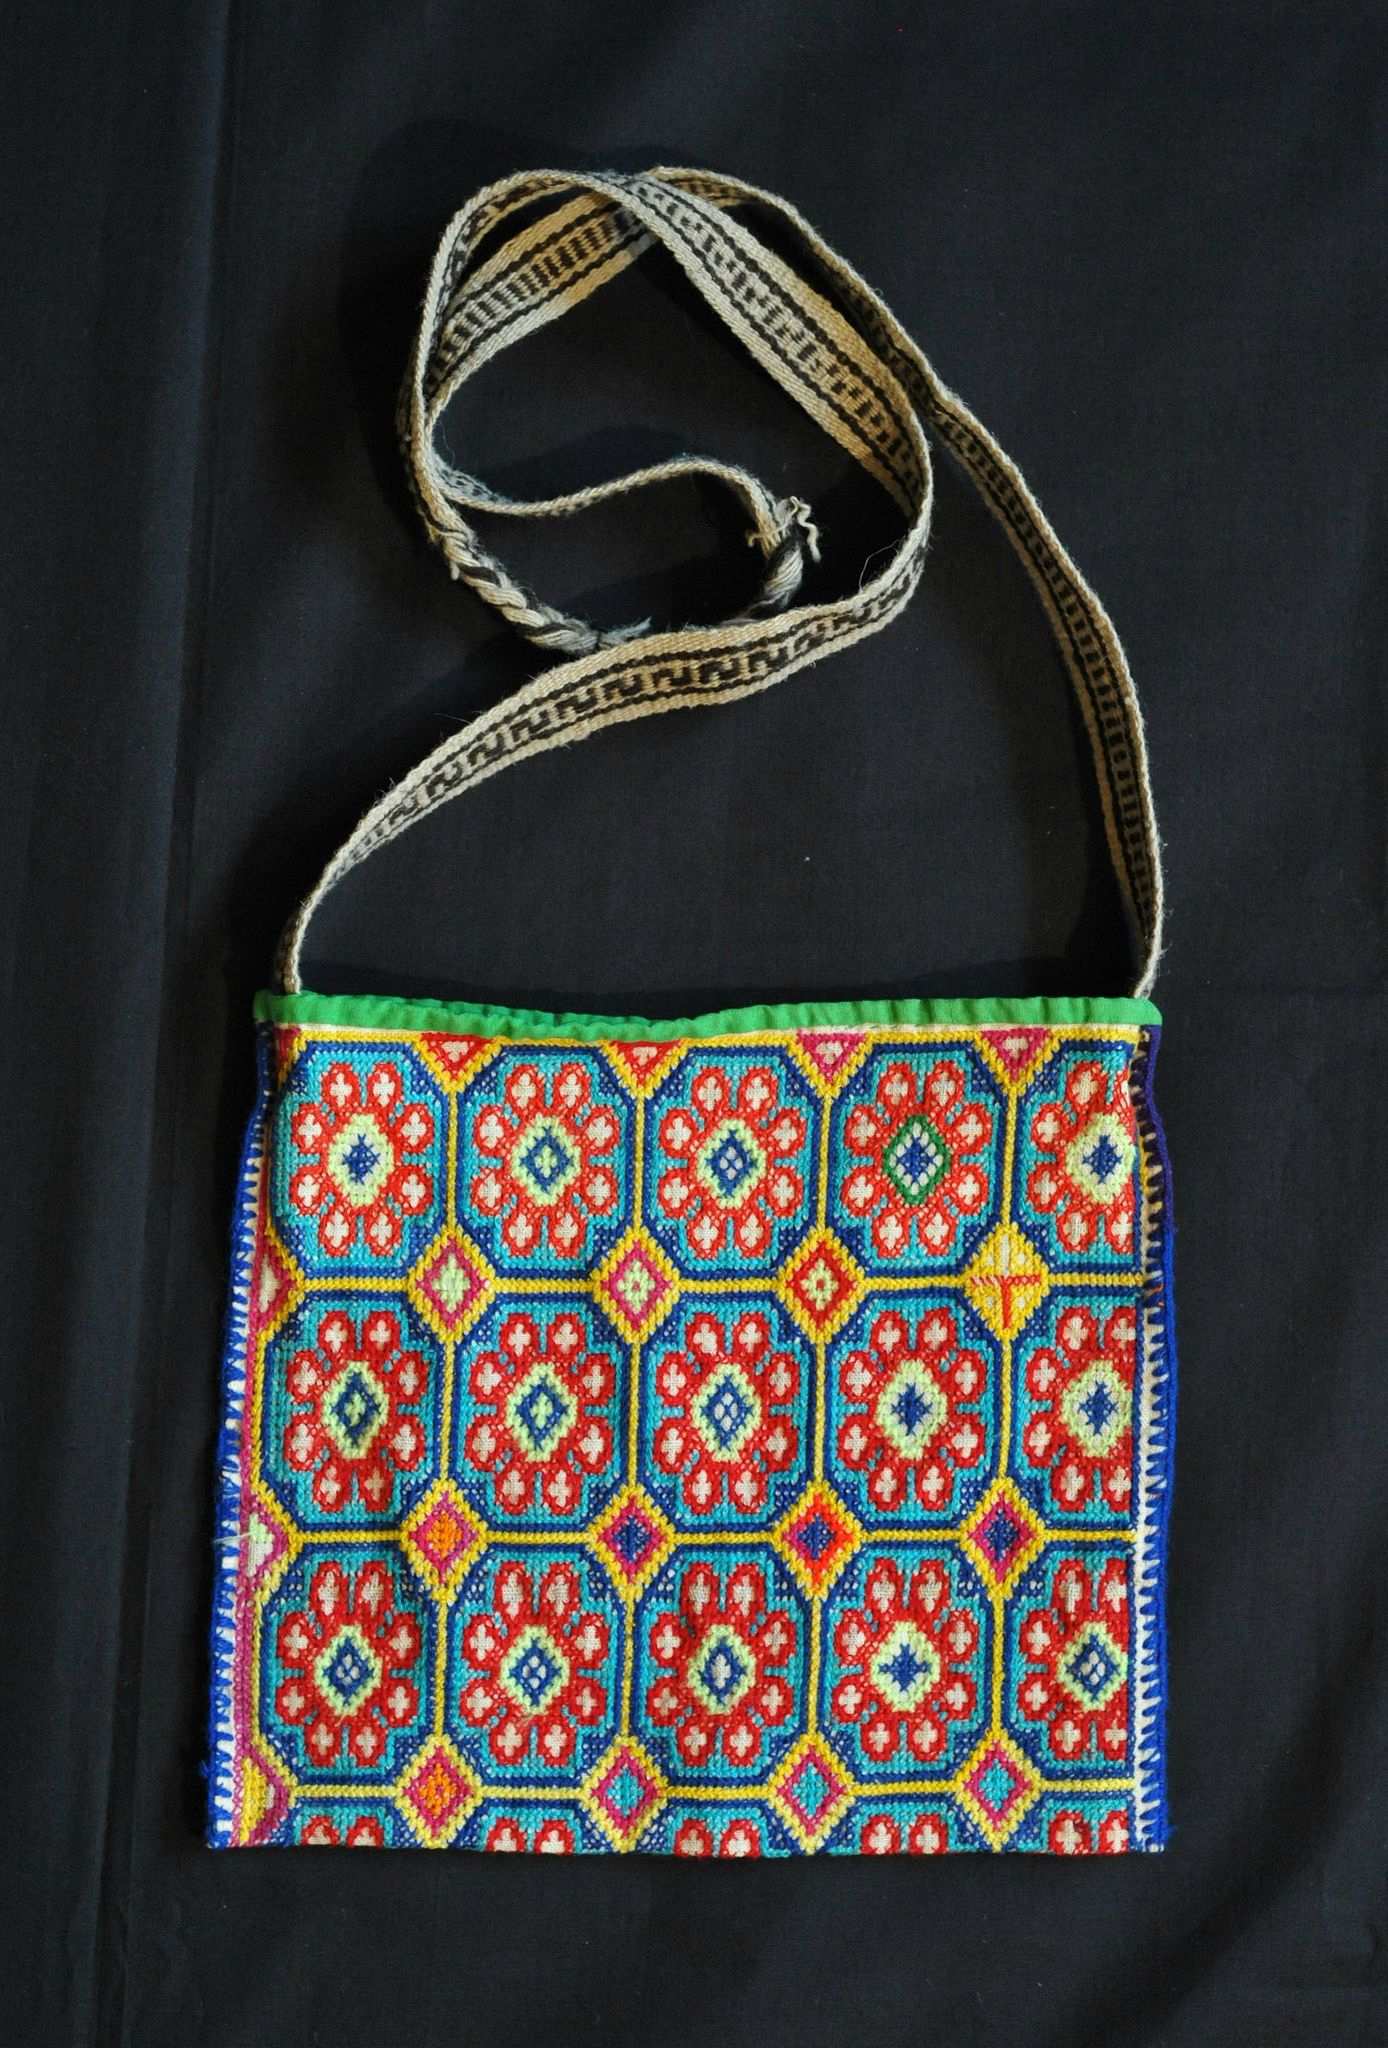 Huichol Bag Mexico | Flickr - Photo Sharing!